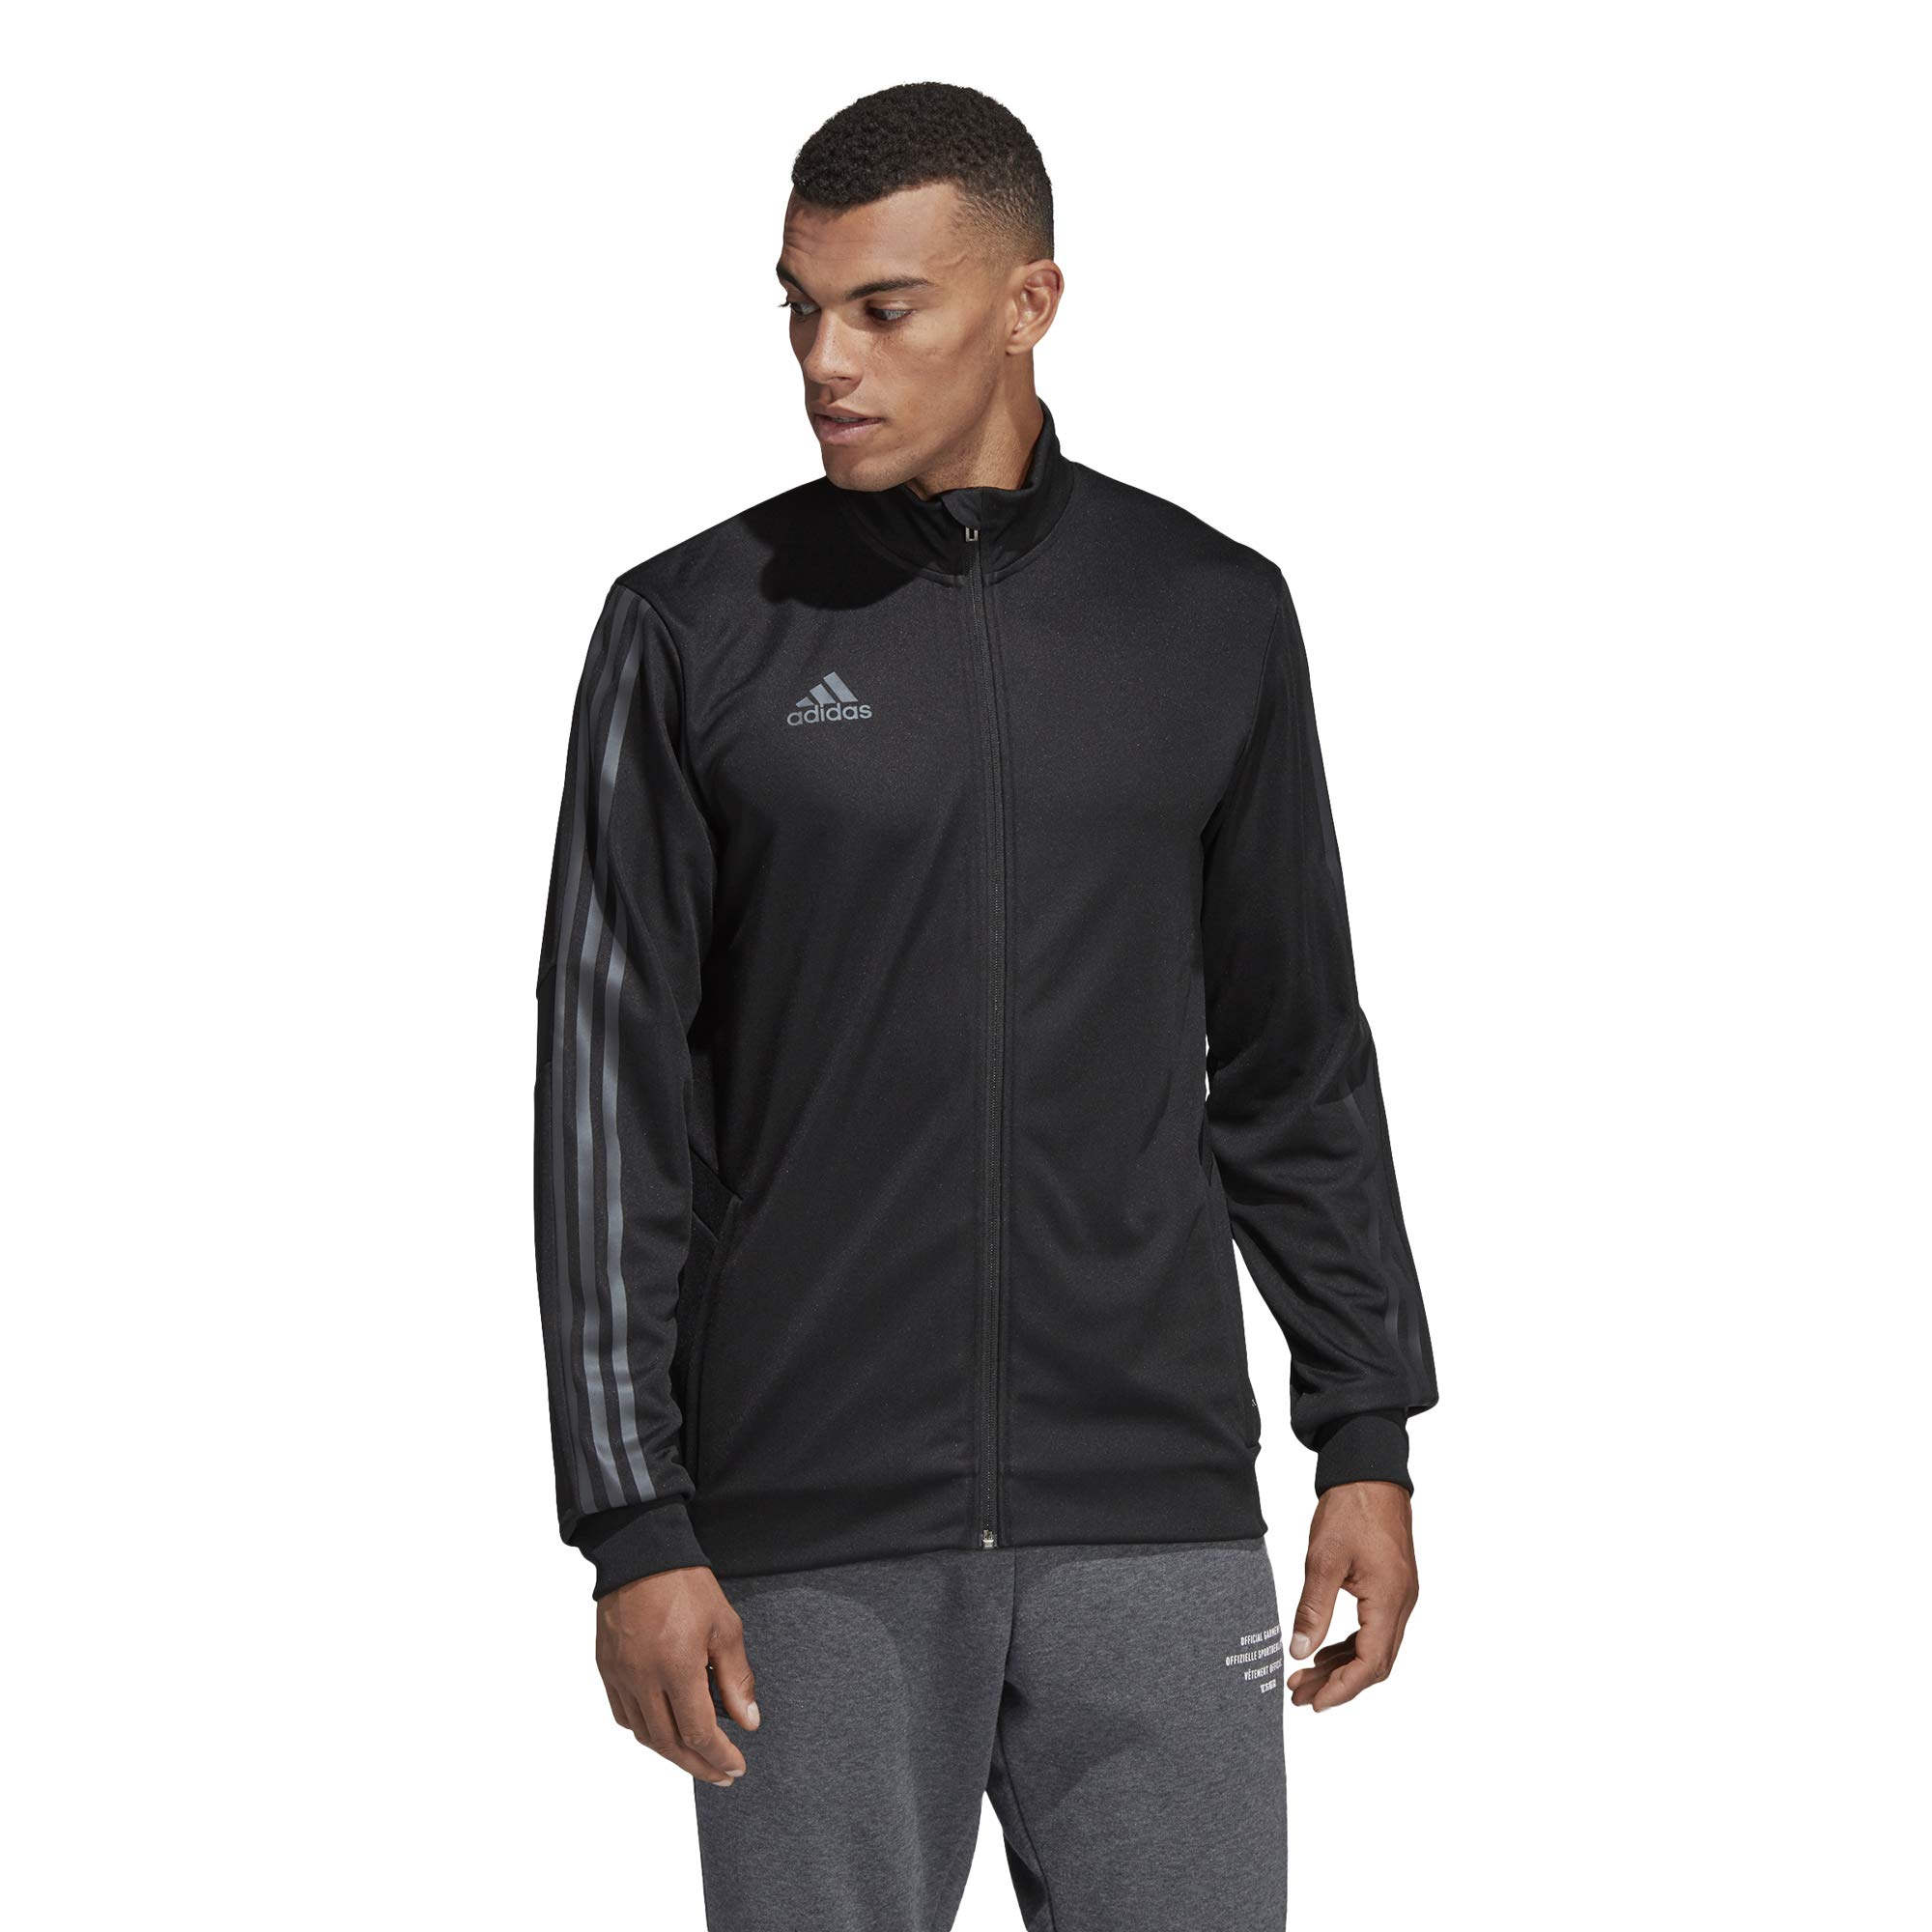 adidas Men's Alphaskin Tiro Training Jacket, Black/Carbon Pearl Essence, Medium by adidas